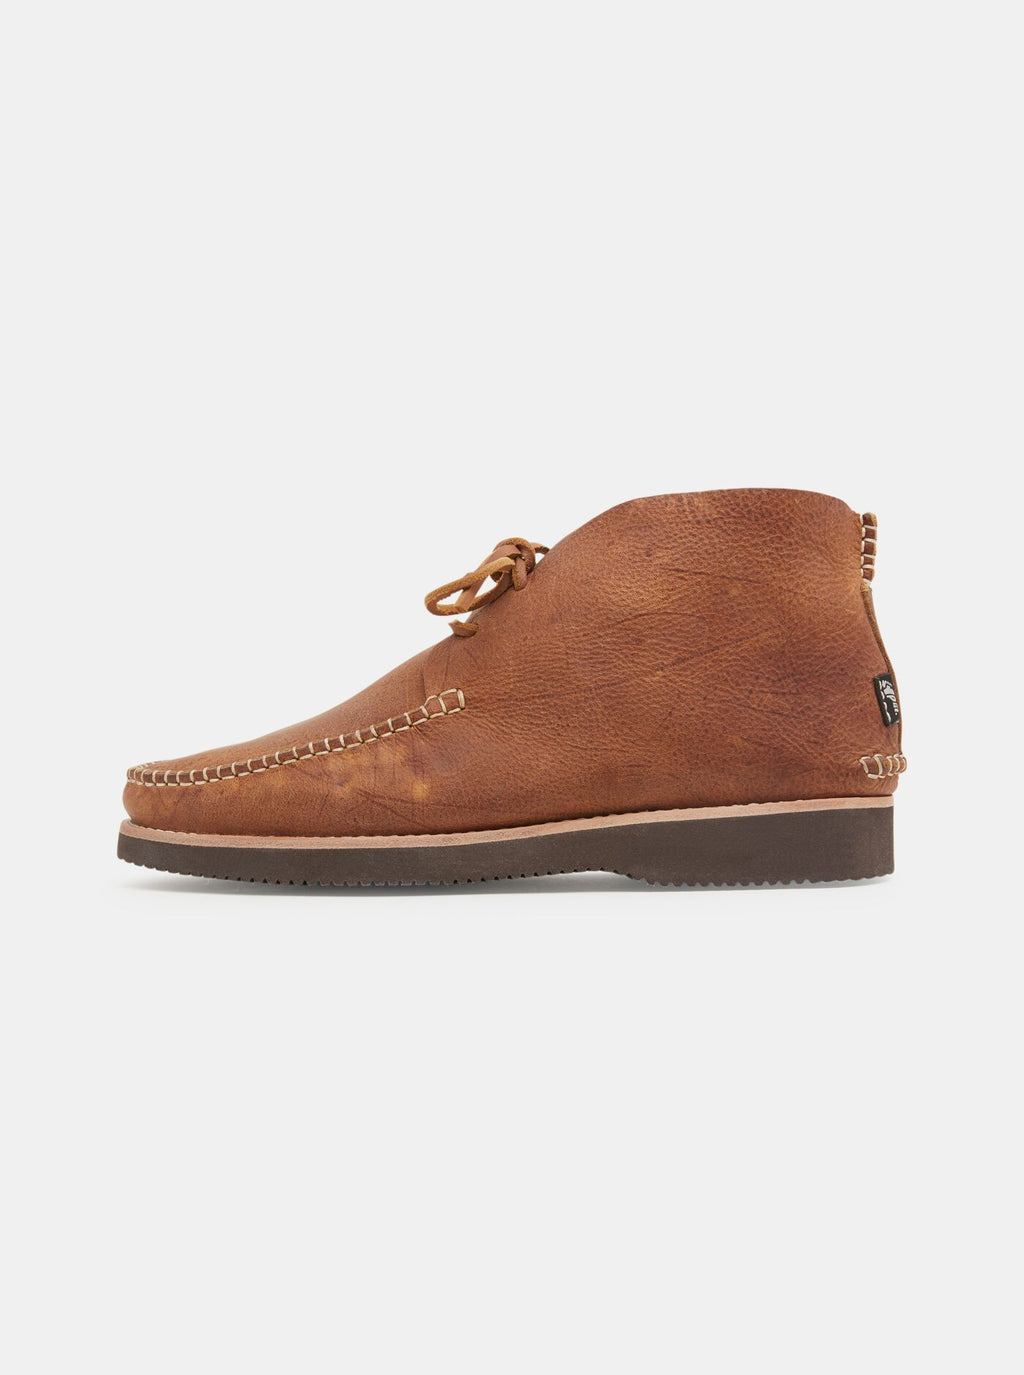 Lucas Tumbled Leather Moccasin Vibram Boot Tan